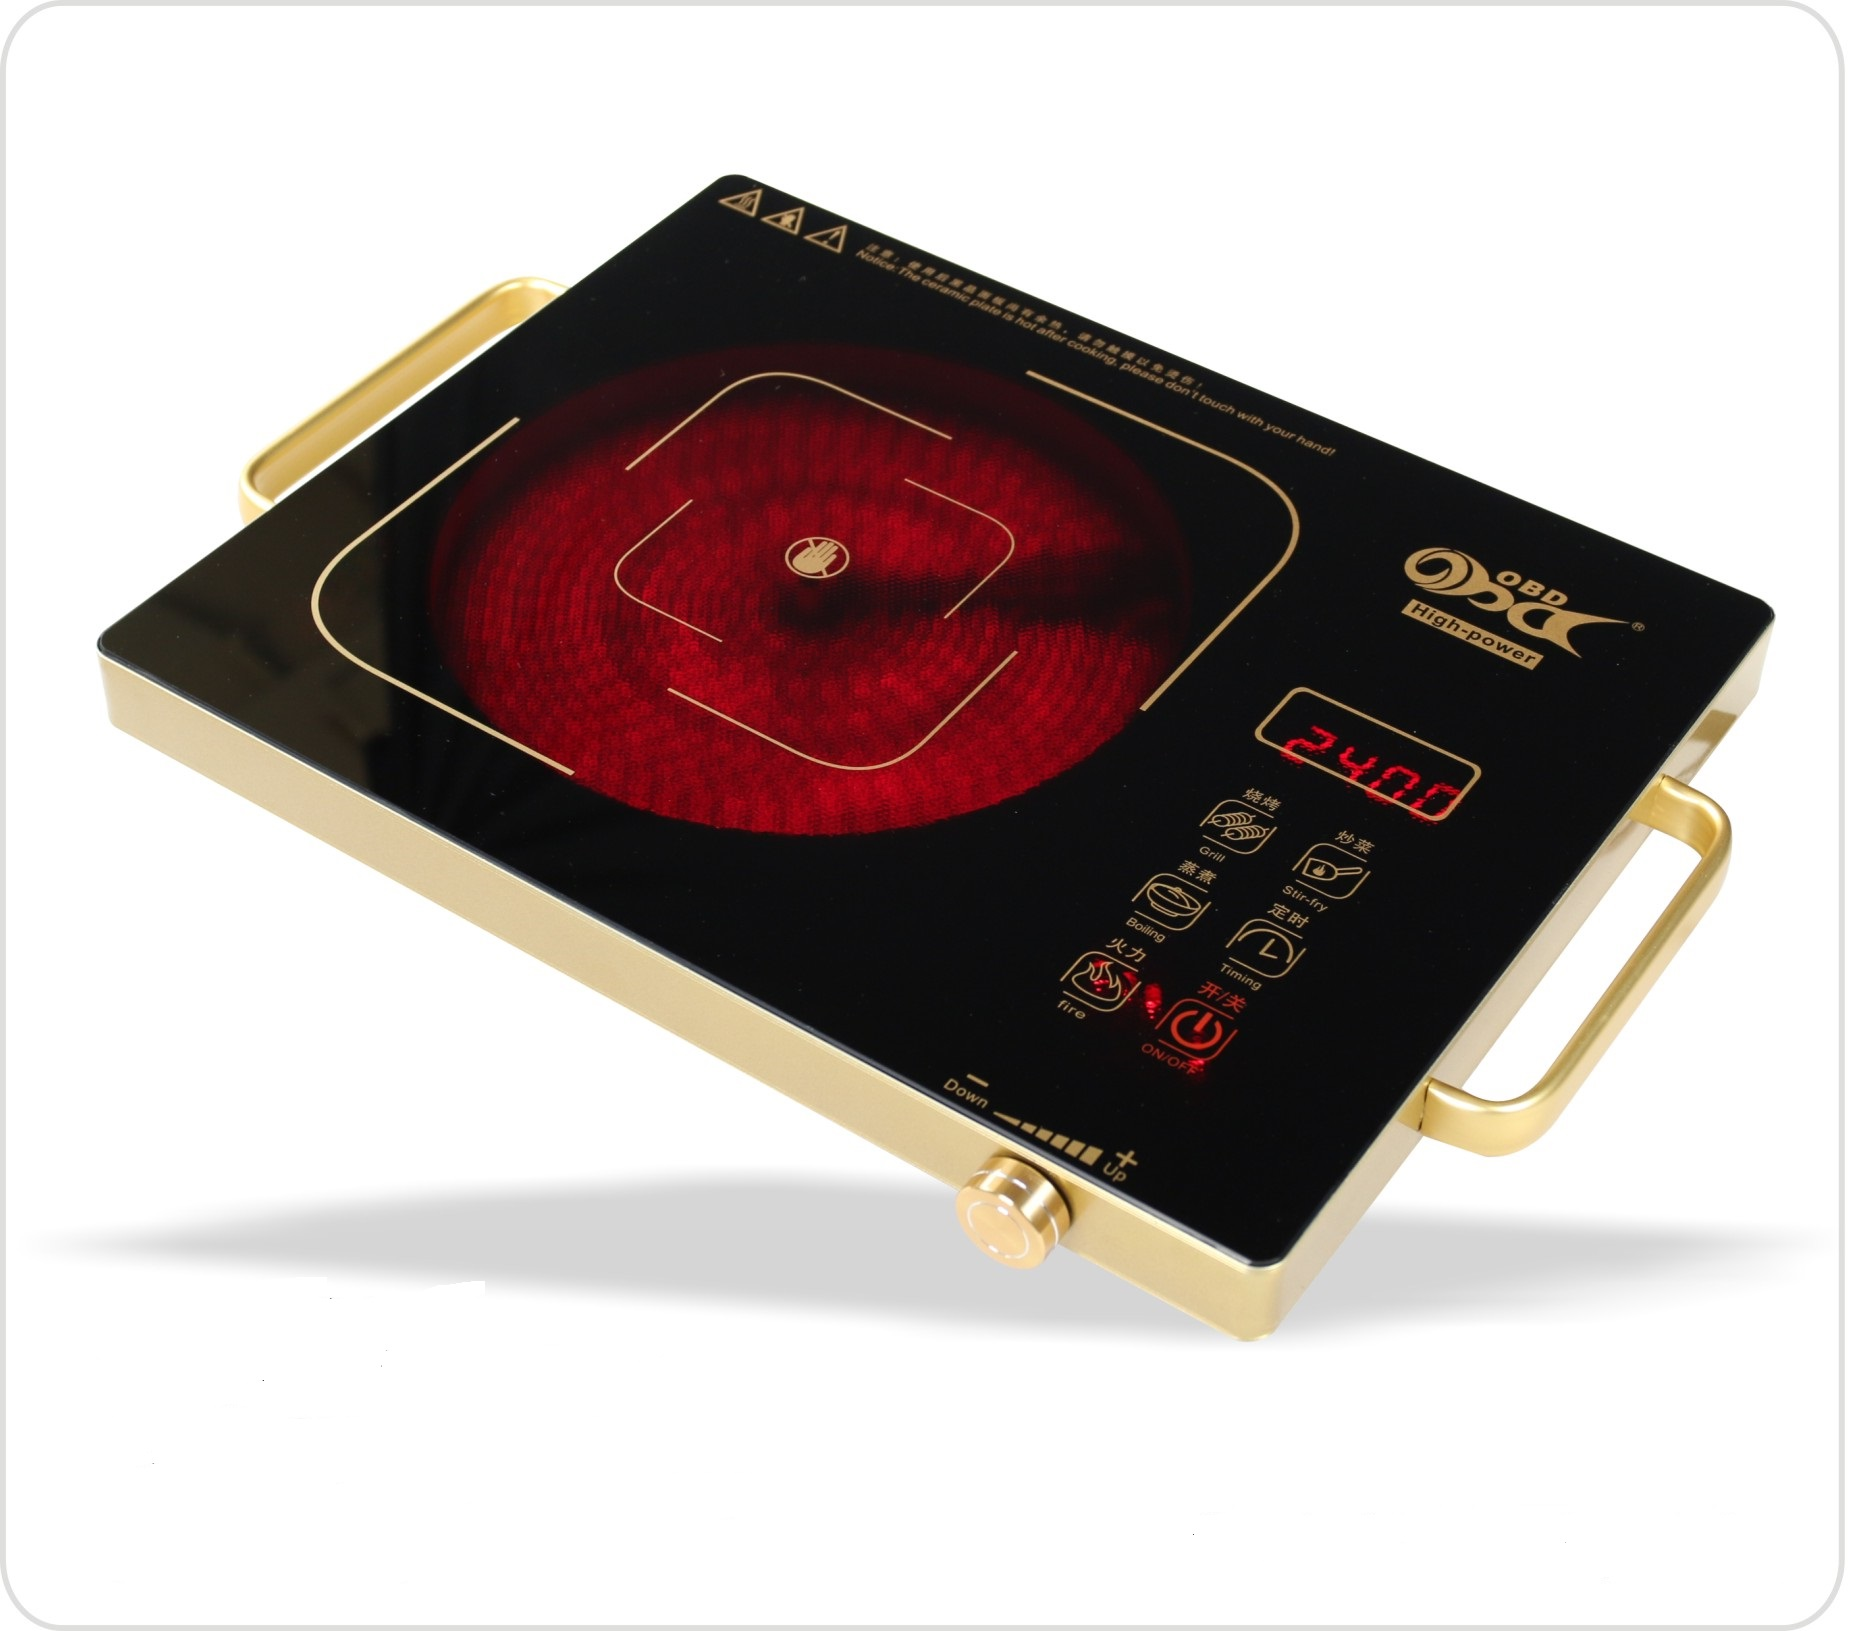 OBD Induction & Infrared Ceramic Cooker Hot Plates